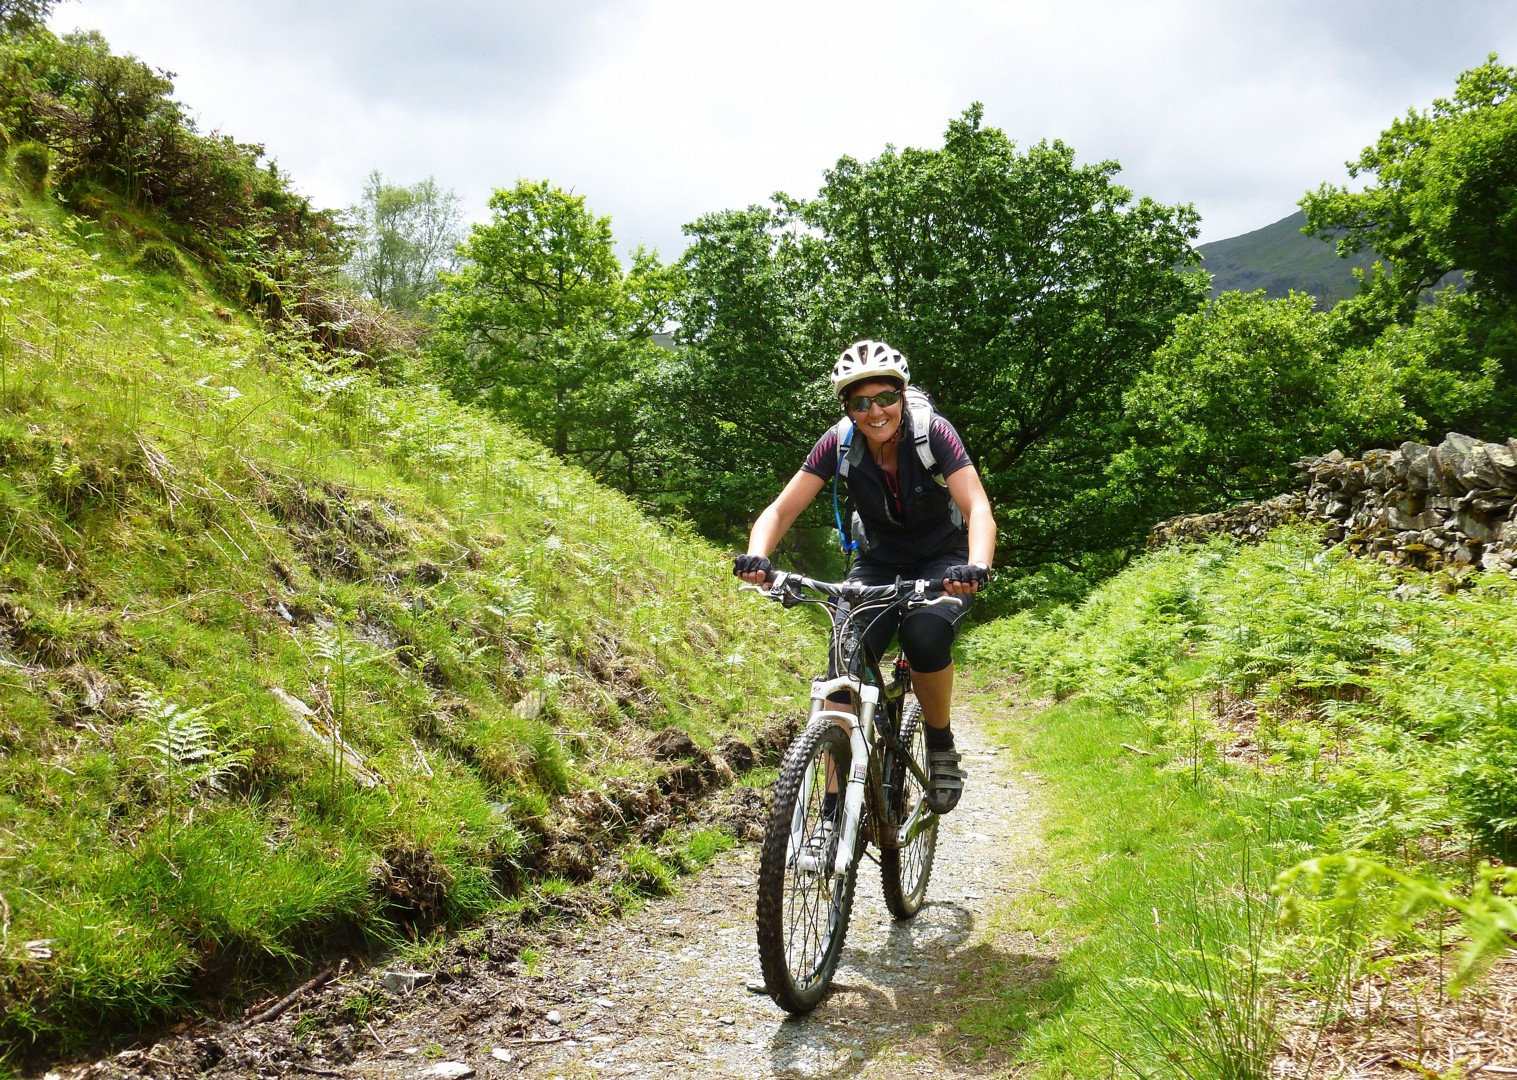 Mountain-Bike-Weekend-UK-Lake-District-Classic-Coniston-1.jpg - UK - Lake District - Classic Coniston - Guided Mountain Bike Weekend - Mountain Biking